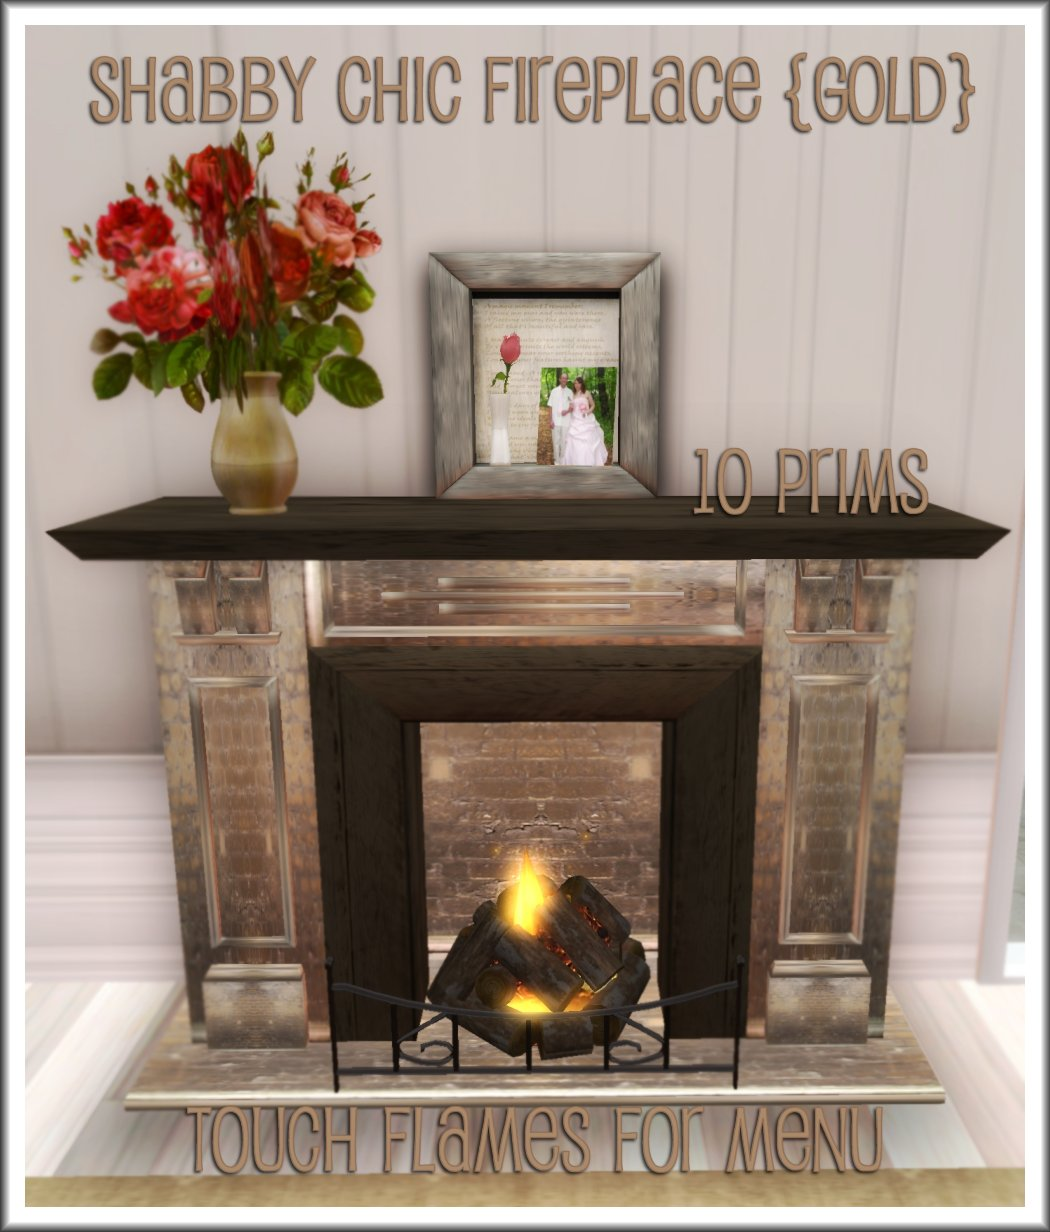 La'Licious Designs: *NEW* Shabby Chic Family Living Room & Fireplace!